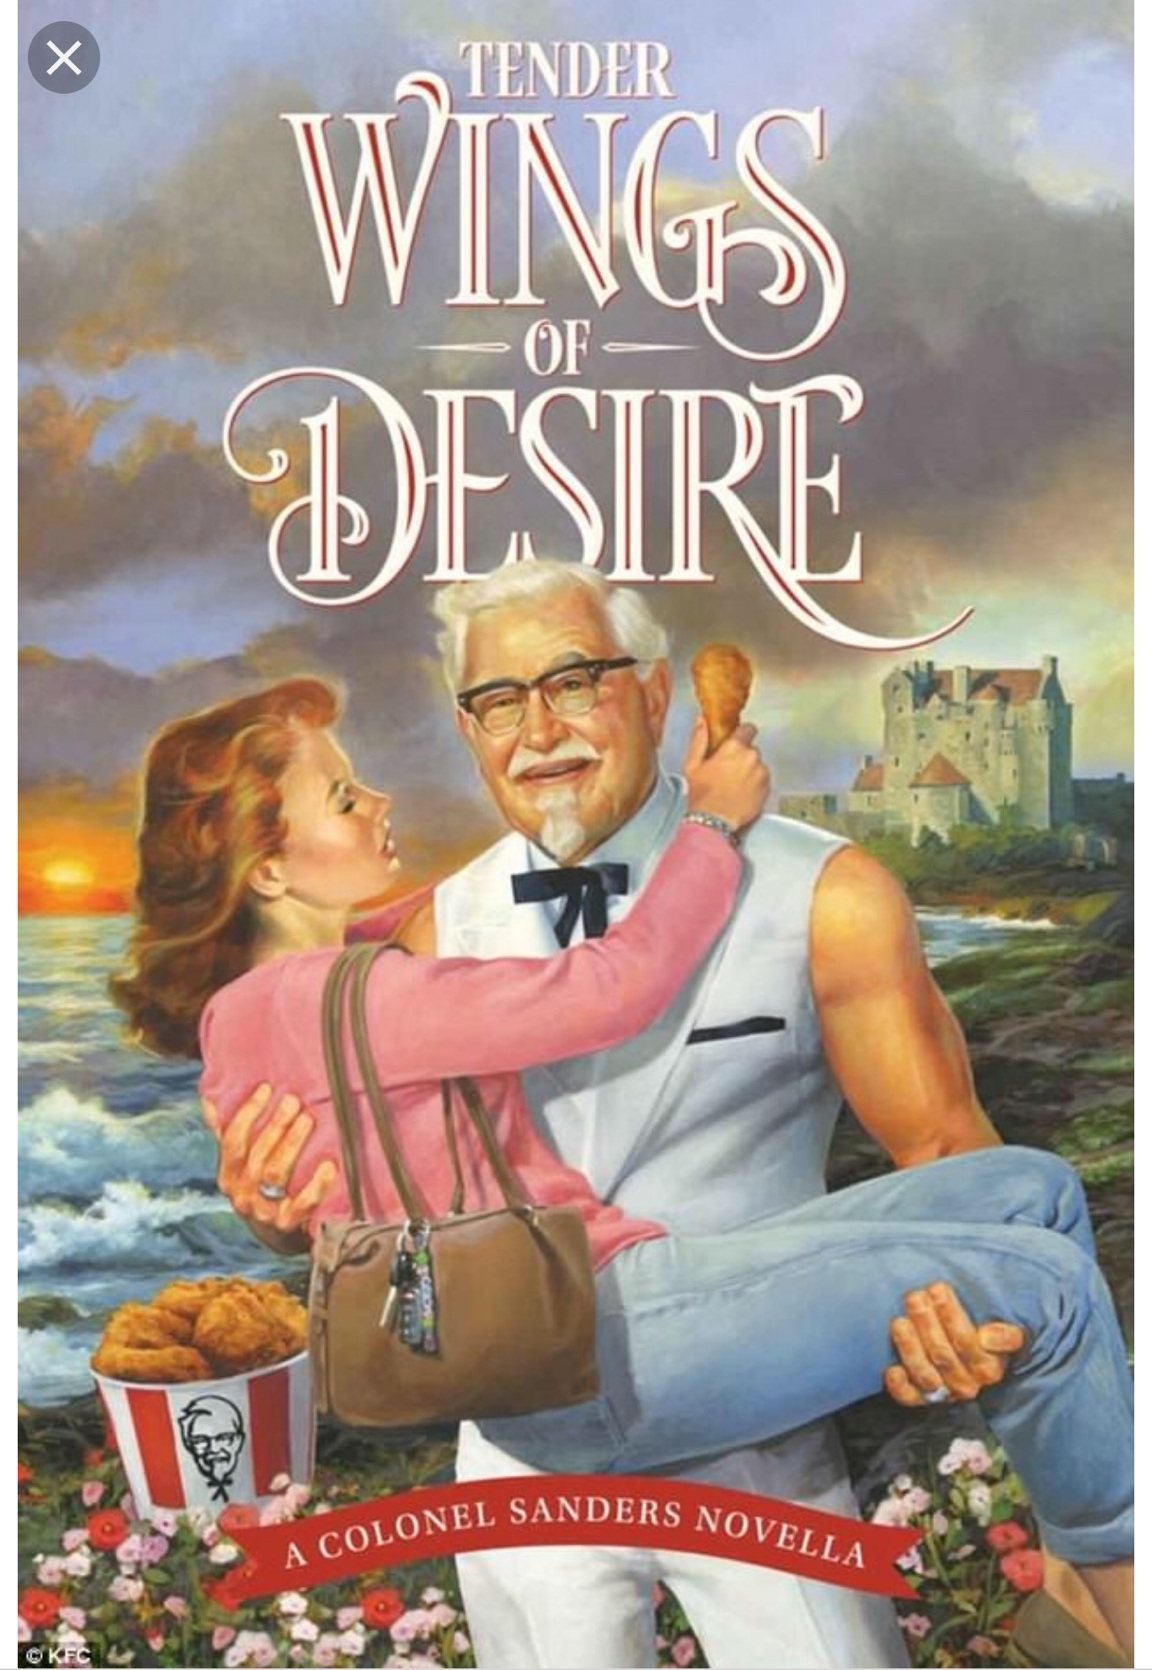 Check out this spicy book cover! Listen to our reaction segment for context!